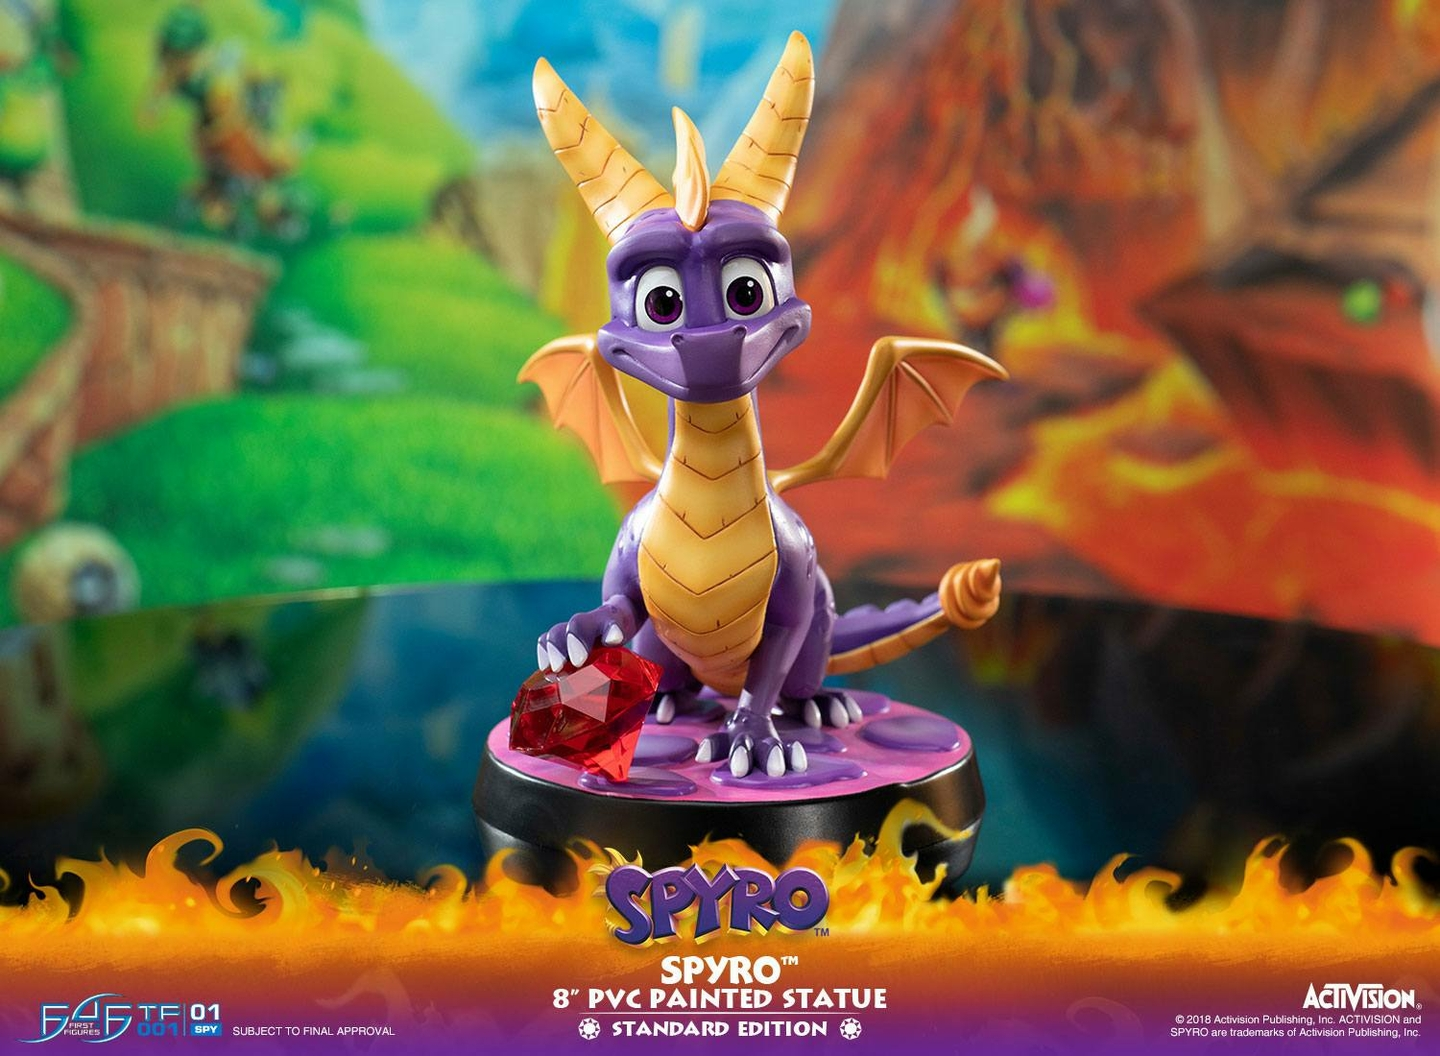 Statuette Spyro the Dragon Spyro 20cm 1001 Figurines (19)